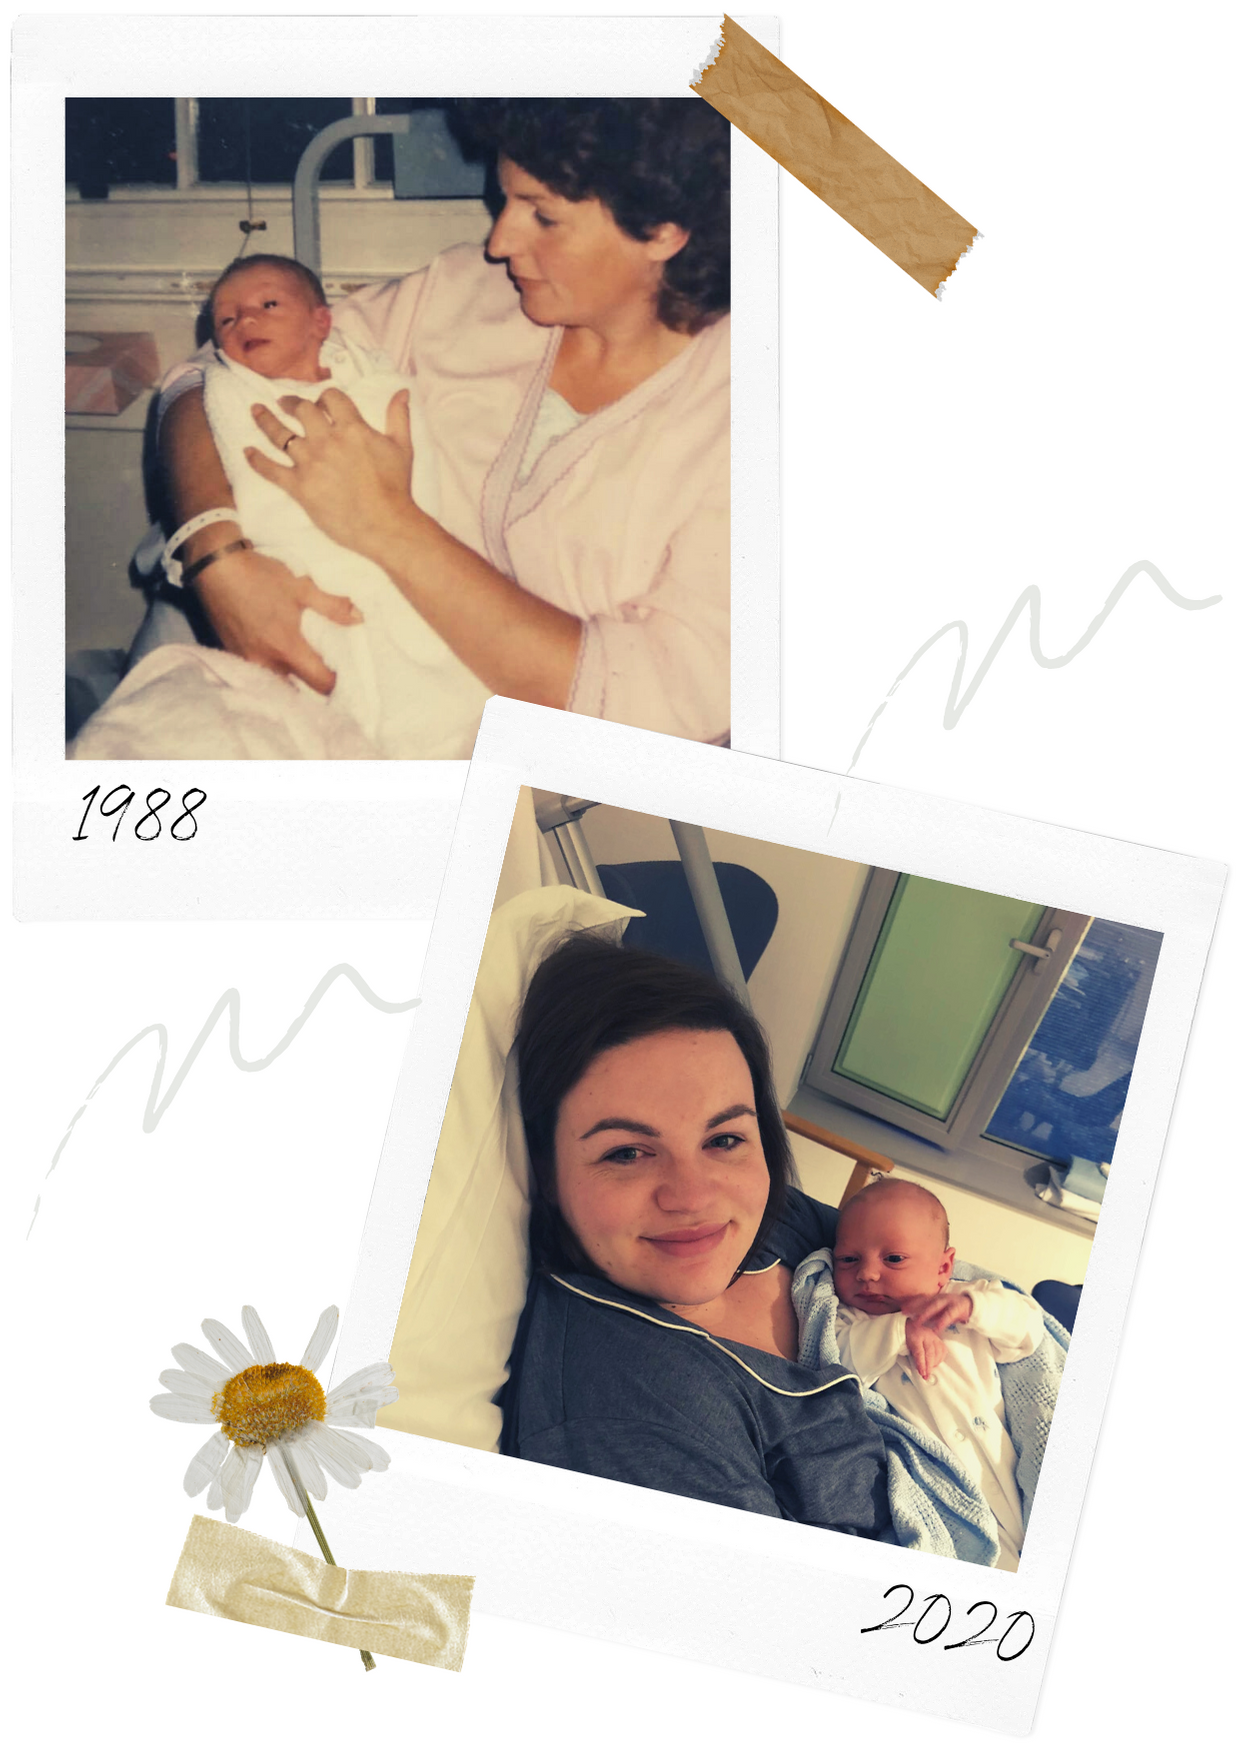 two polaroid photos of mothers with their babies